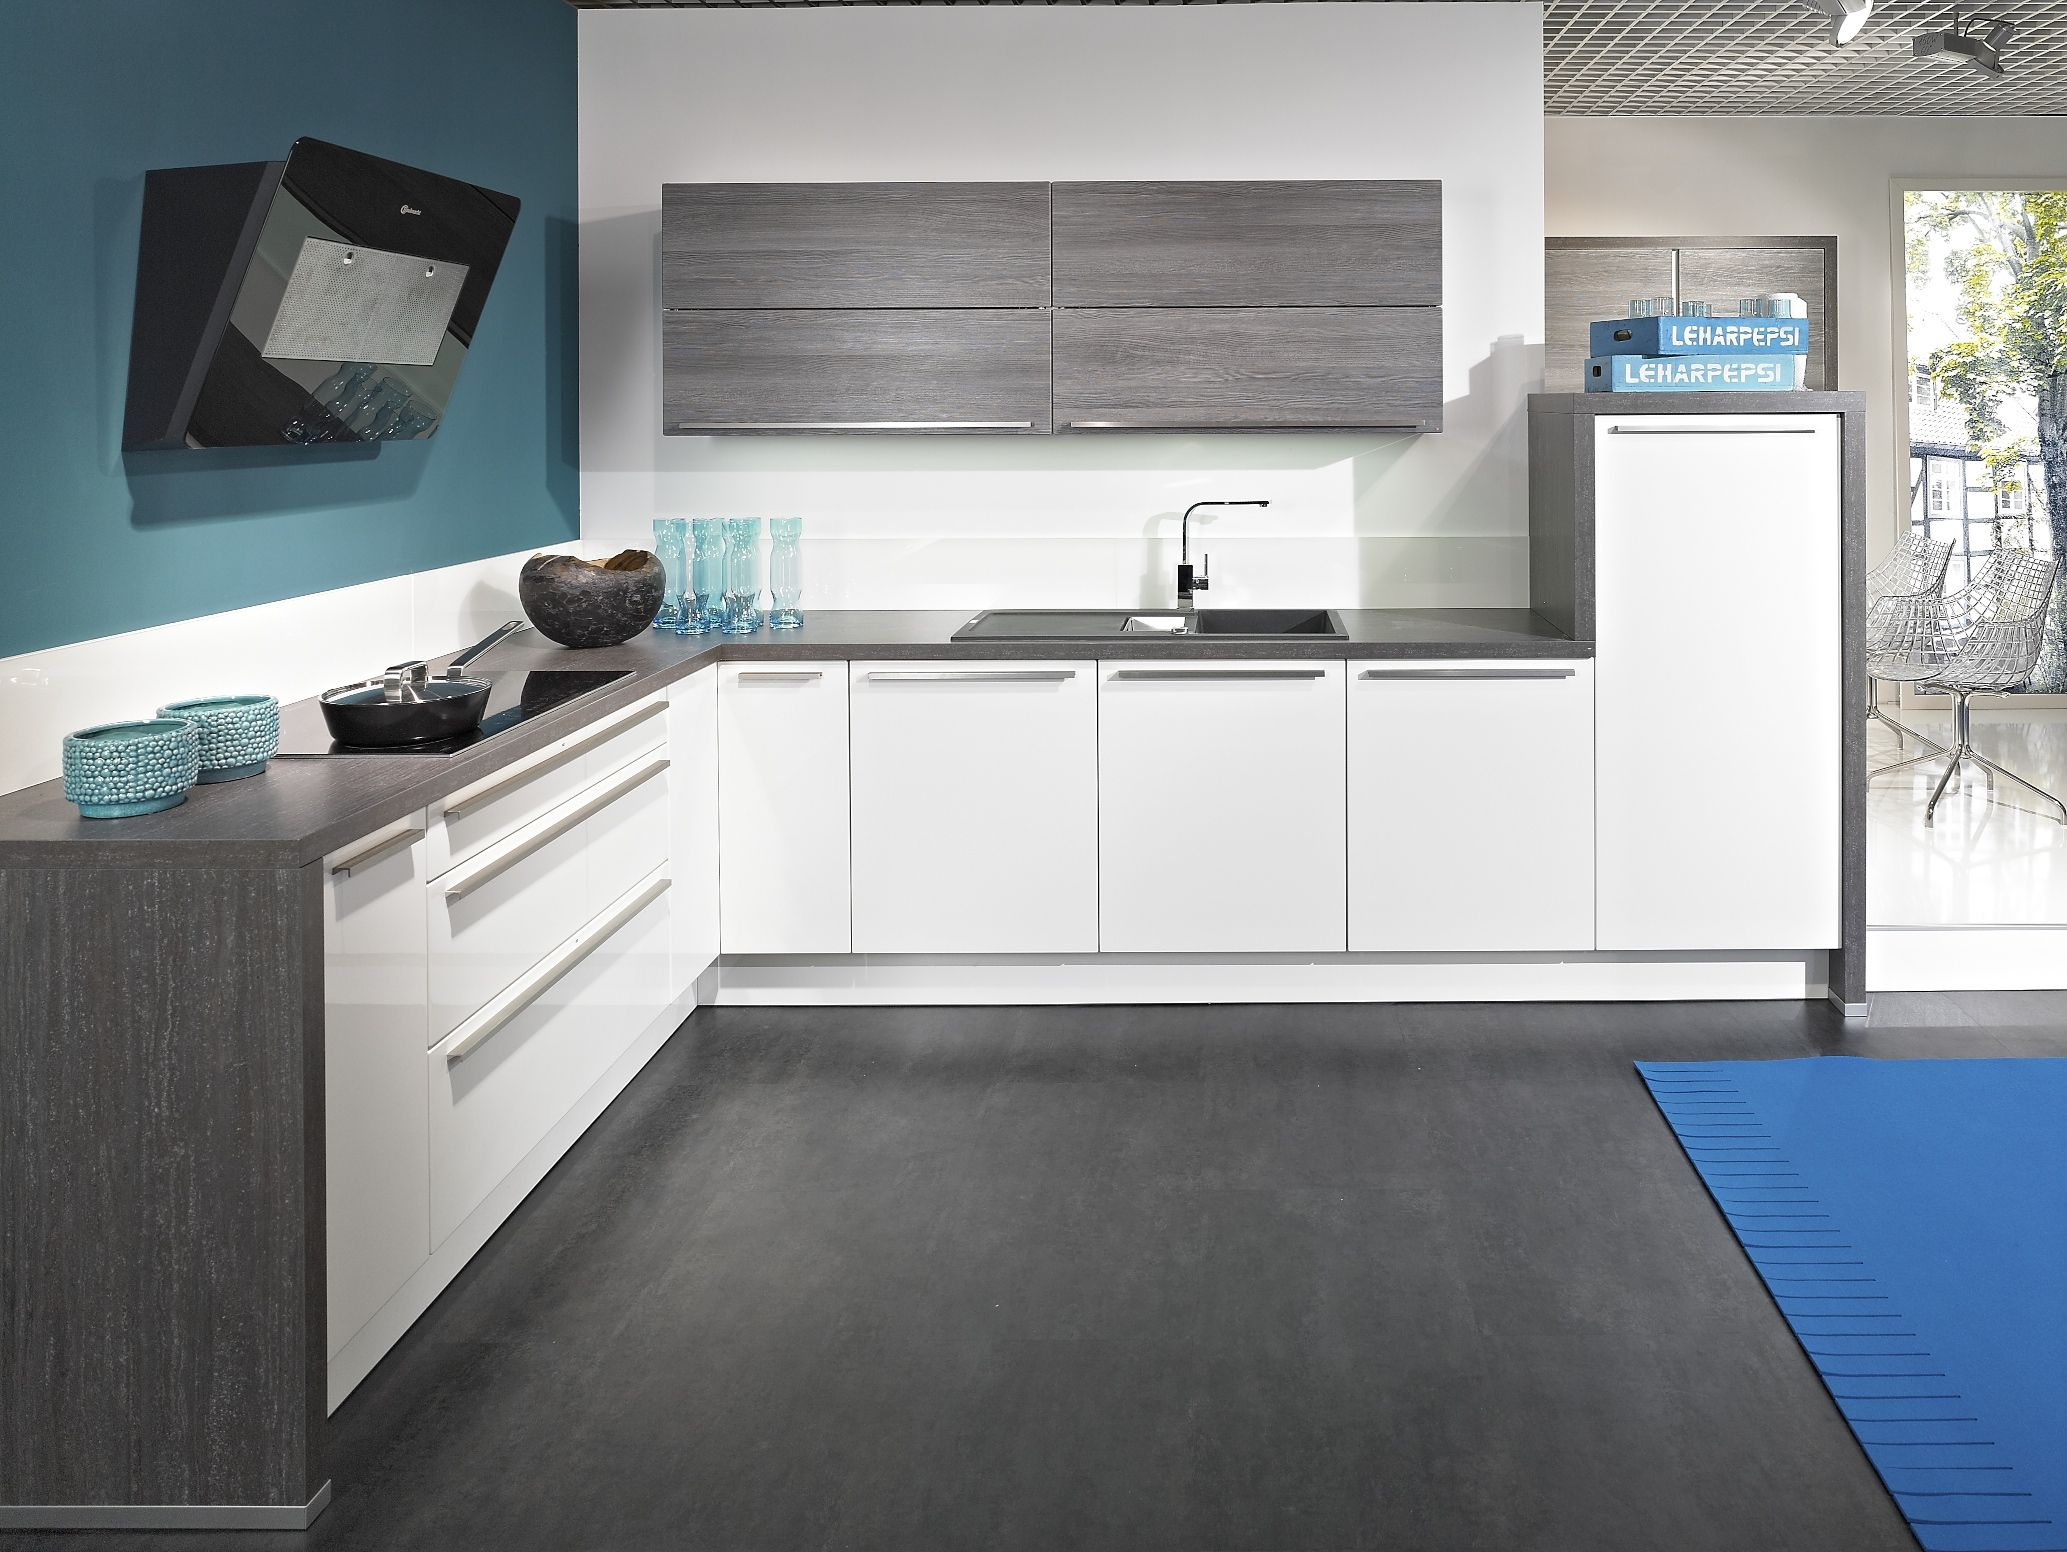 Gloss Kitchen Floor Tiles Gray Kitchens With Calm And Elegant Look Blue Sky Dining